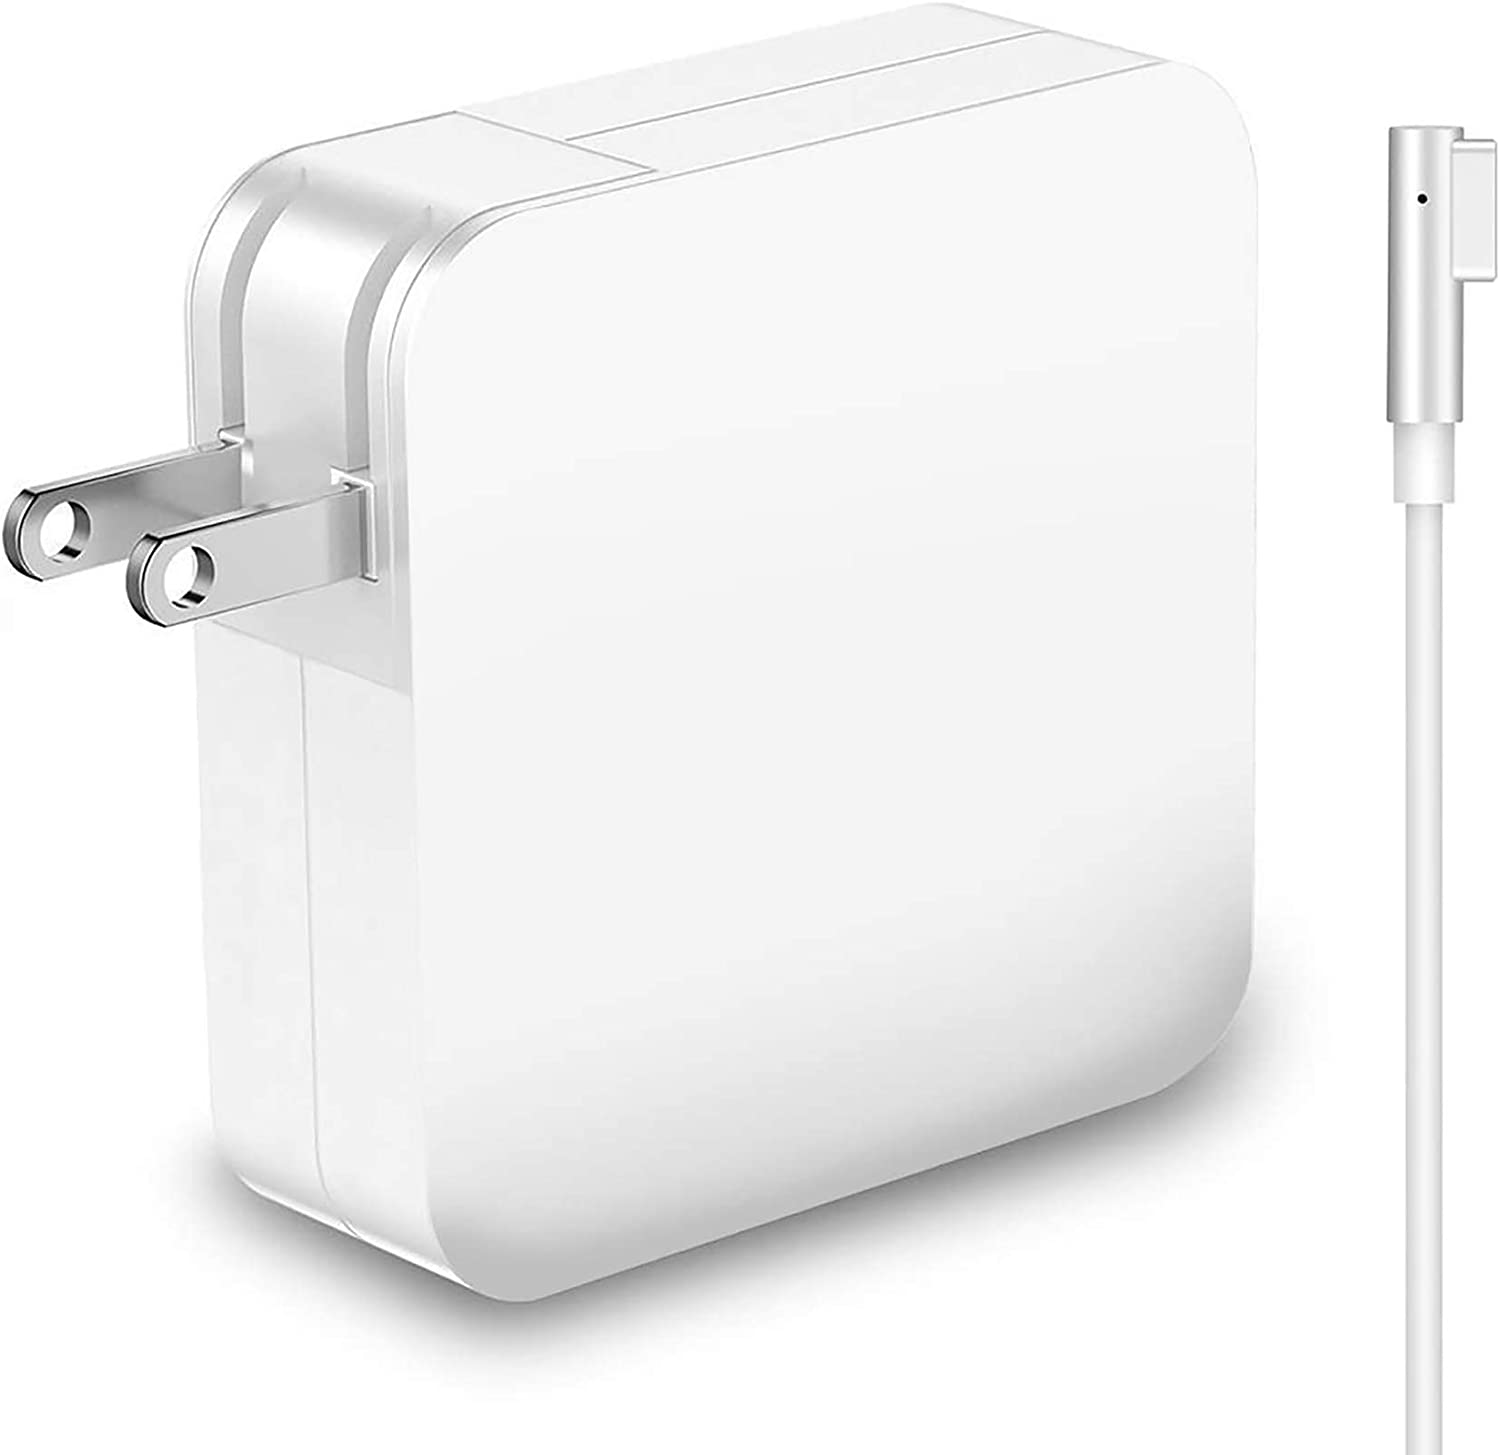 Mac Book Pro Charger, Replacement 60W Power Adapter L-Tip Magnetic Connector Charger for Mac Book Pro 13-inch(Before Mid 2012 Models) (60L Tip)